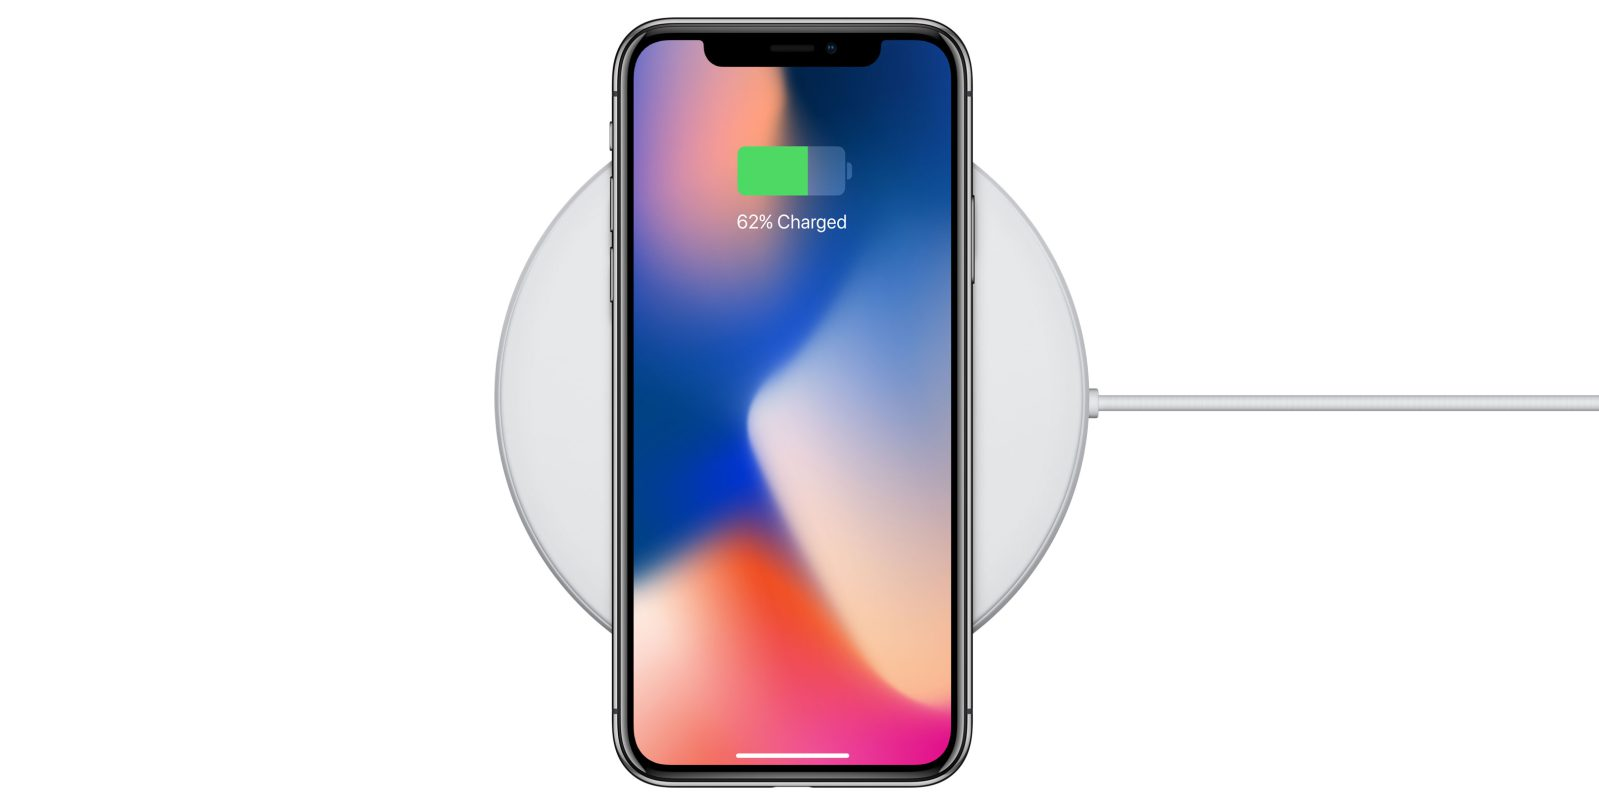 Iphone X Qi Wireless Charging Wire Center Scr Time Delay Circuit Diagram Tradeoficcom Best Charger 9to5mac Rh Com Battery Case With